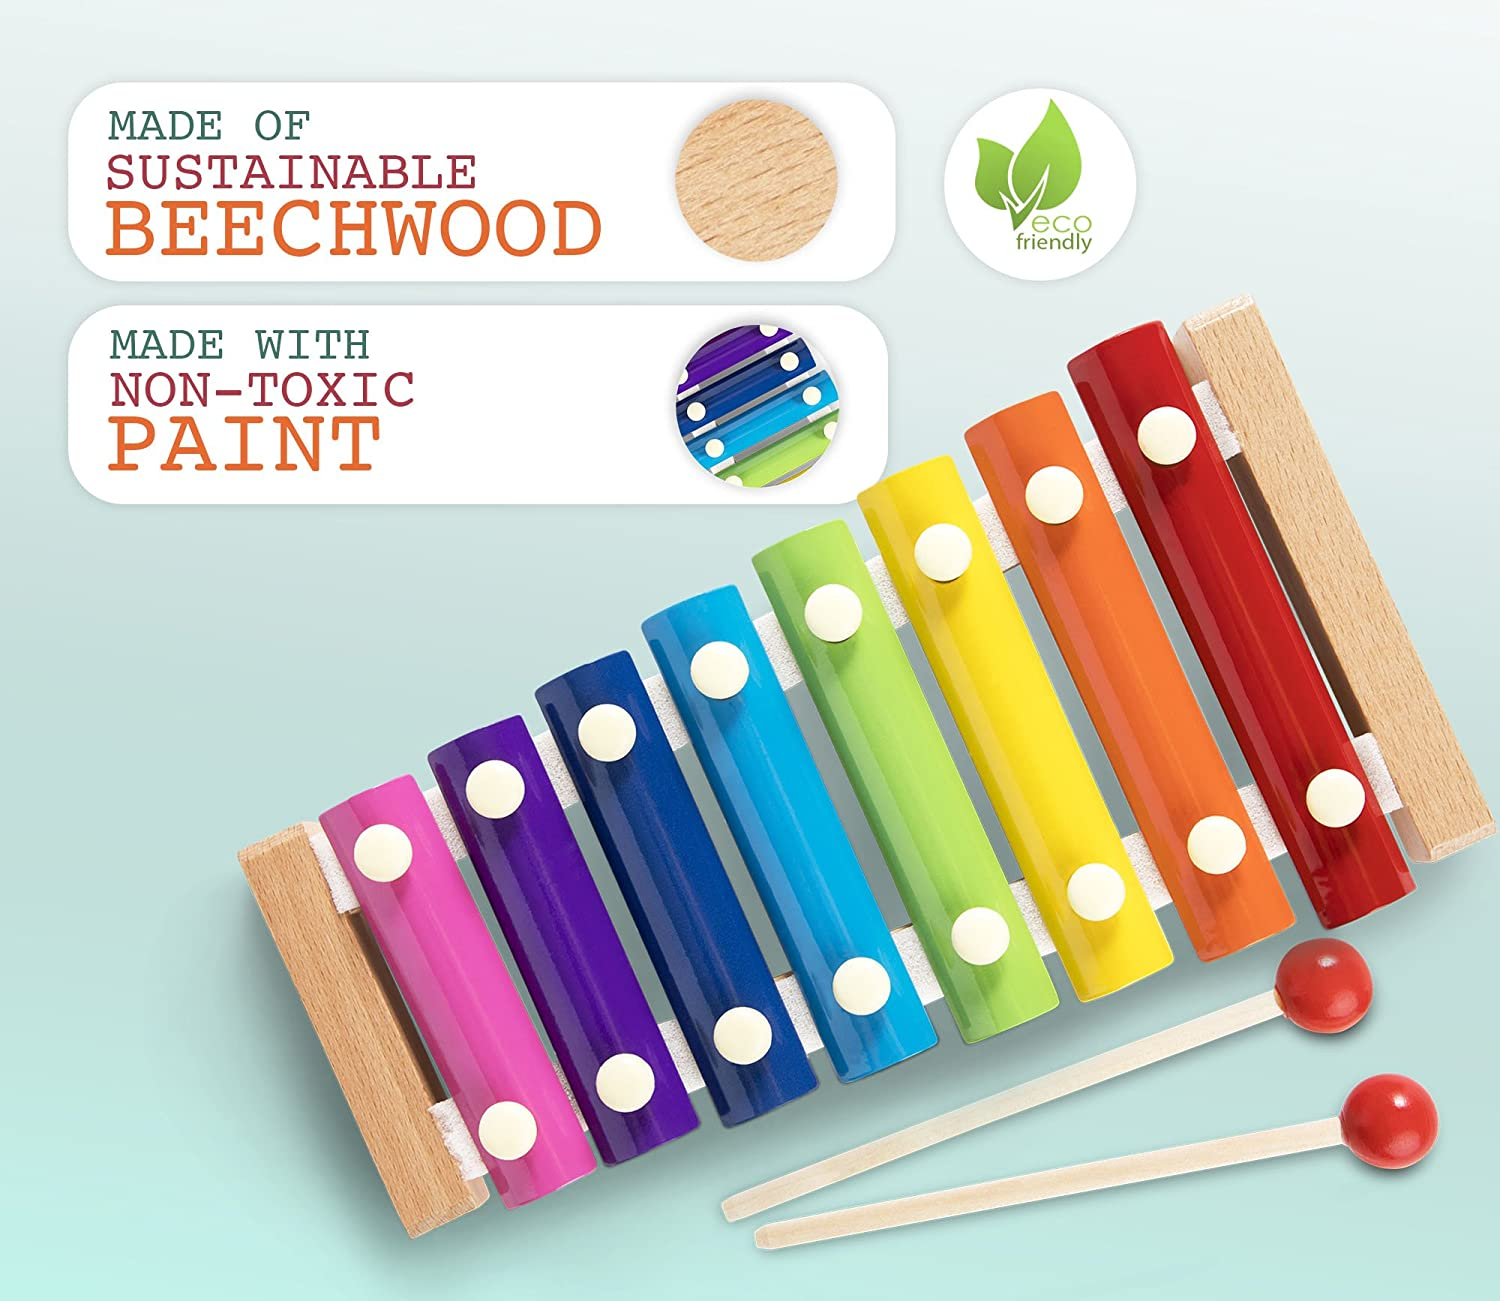 Beechwood Xylophones with Wooden Mallets  Musical Instrument Toys for Childhood Learning and Development Toddler and Kids Xylophone Kinderjazz Rainbow Colored Baby Non Toxic